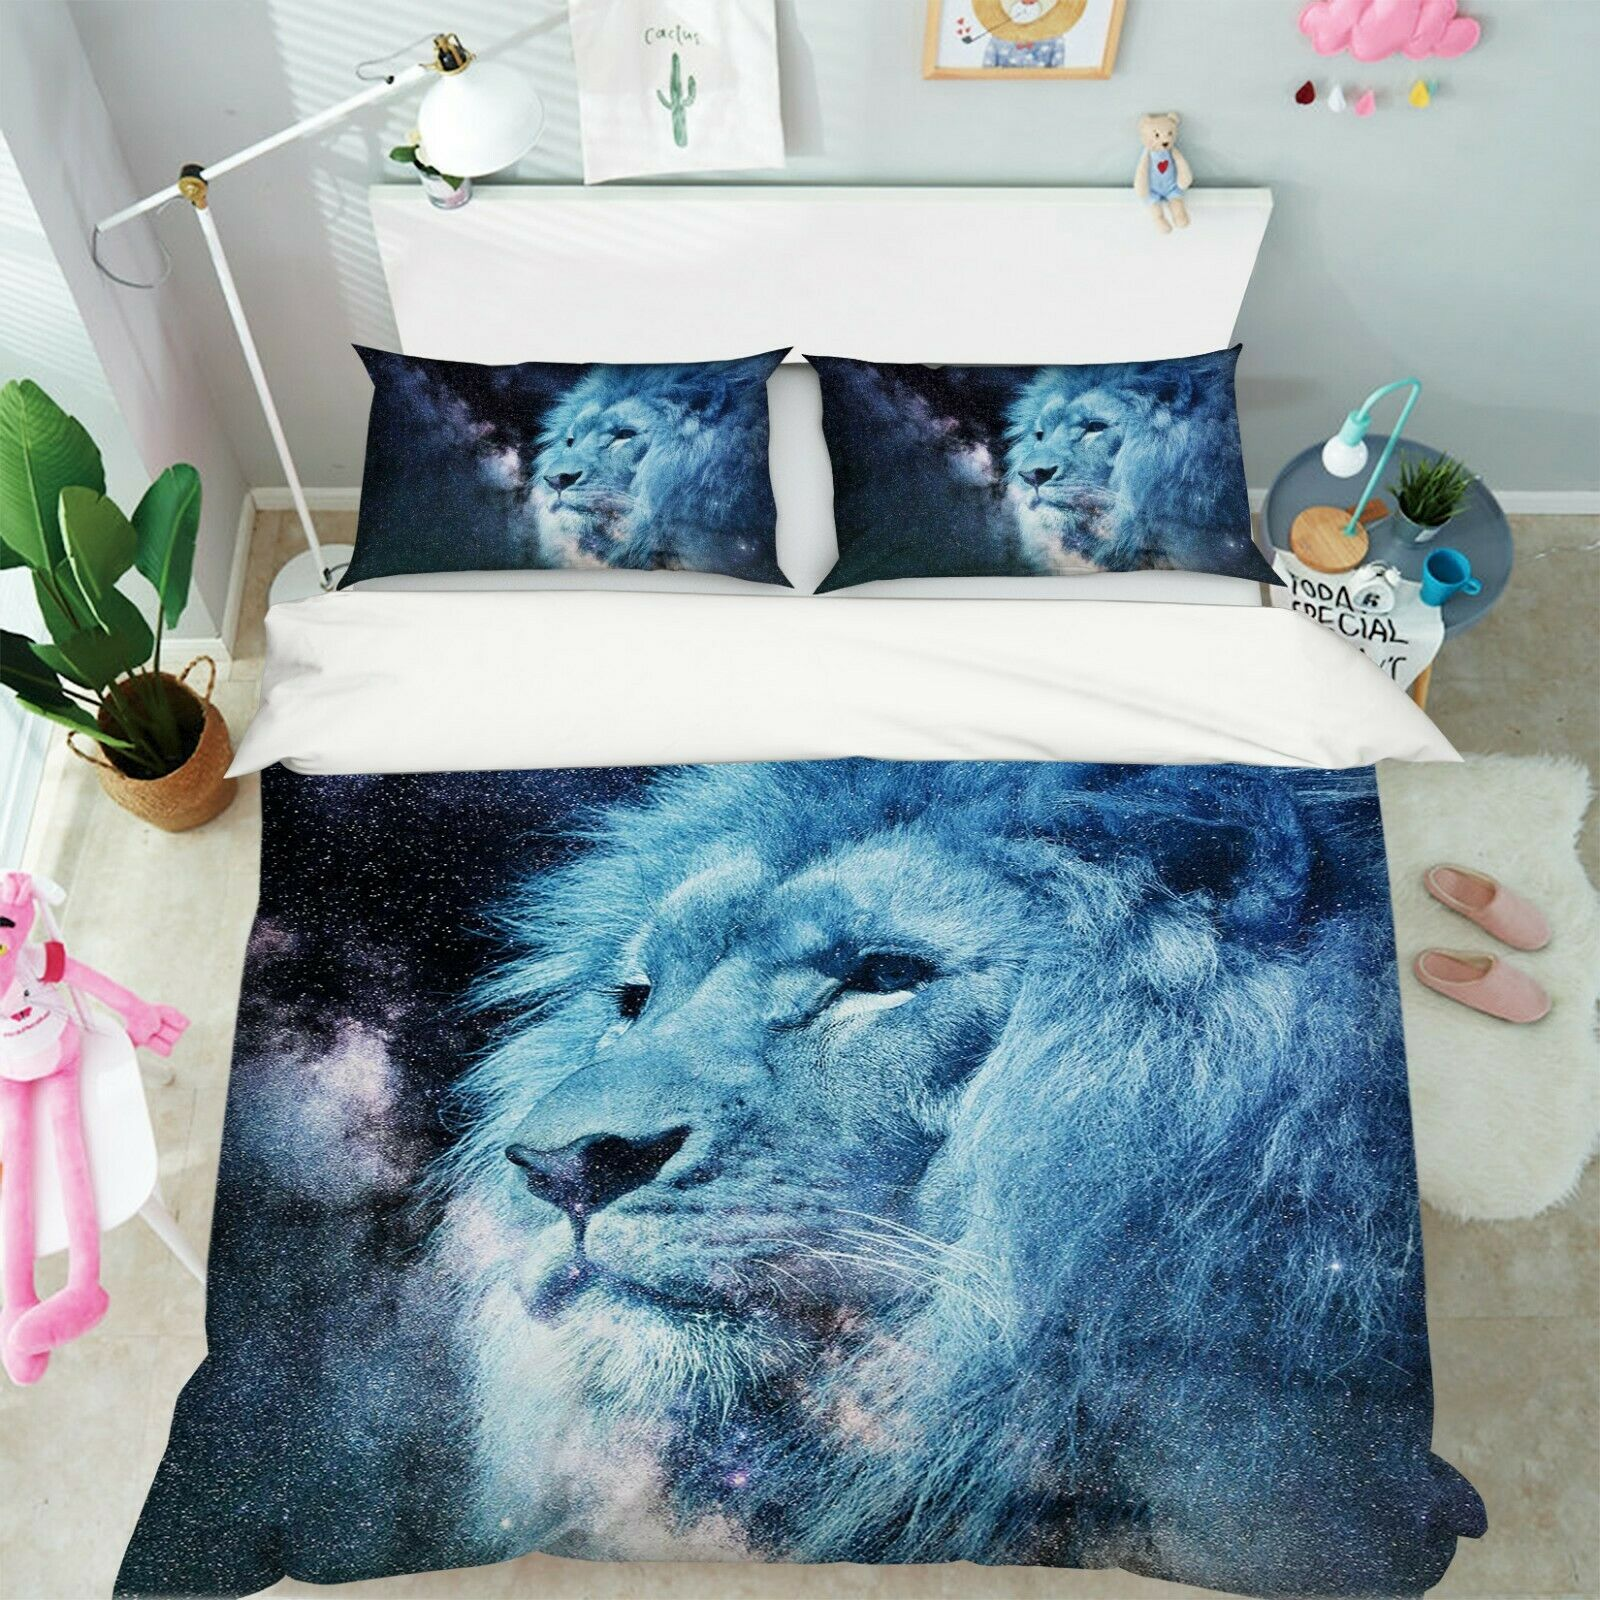 3D Fantasy Lion O75 Animal Bed Pillowcases Quilt Duvet Cover Set Queen King Amy